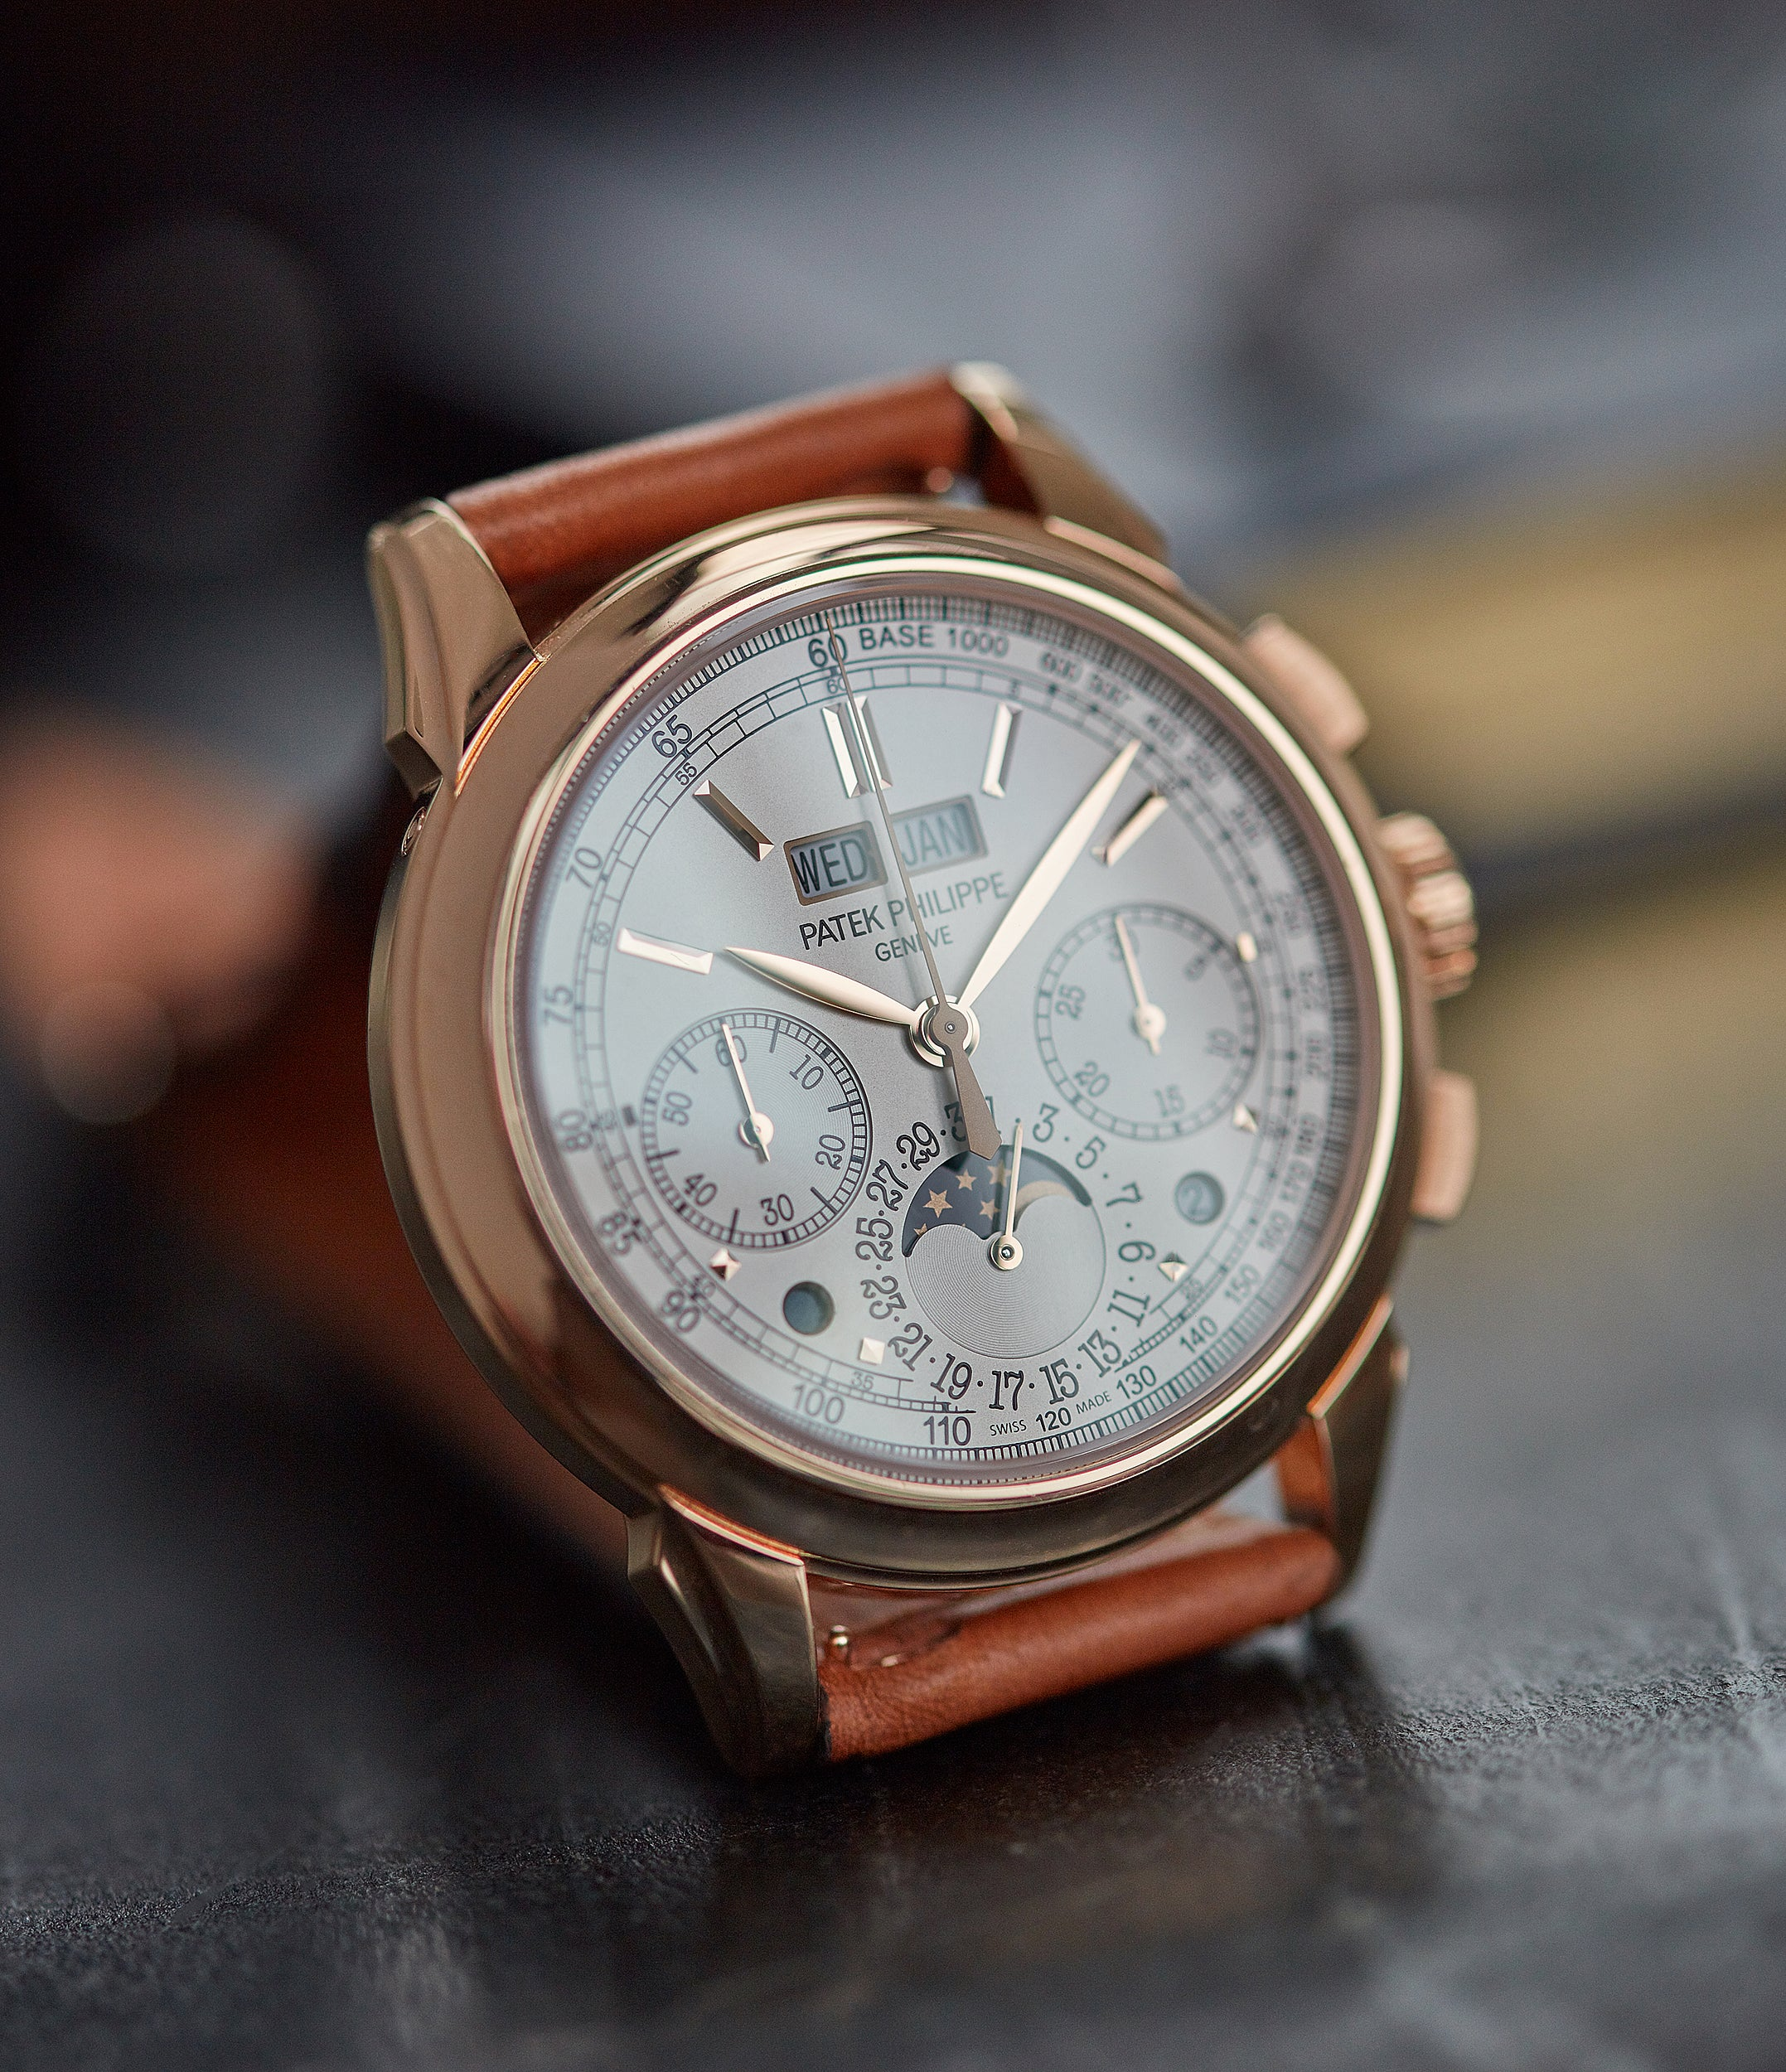 Patek Philippe Grand Complications full rose gold 5270R-001 Perpetual Calendar Chronograph dress watch for sale online at A Collected Man London UK specialist of rare watches